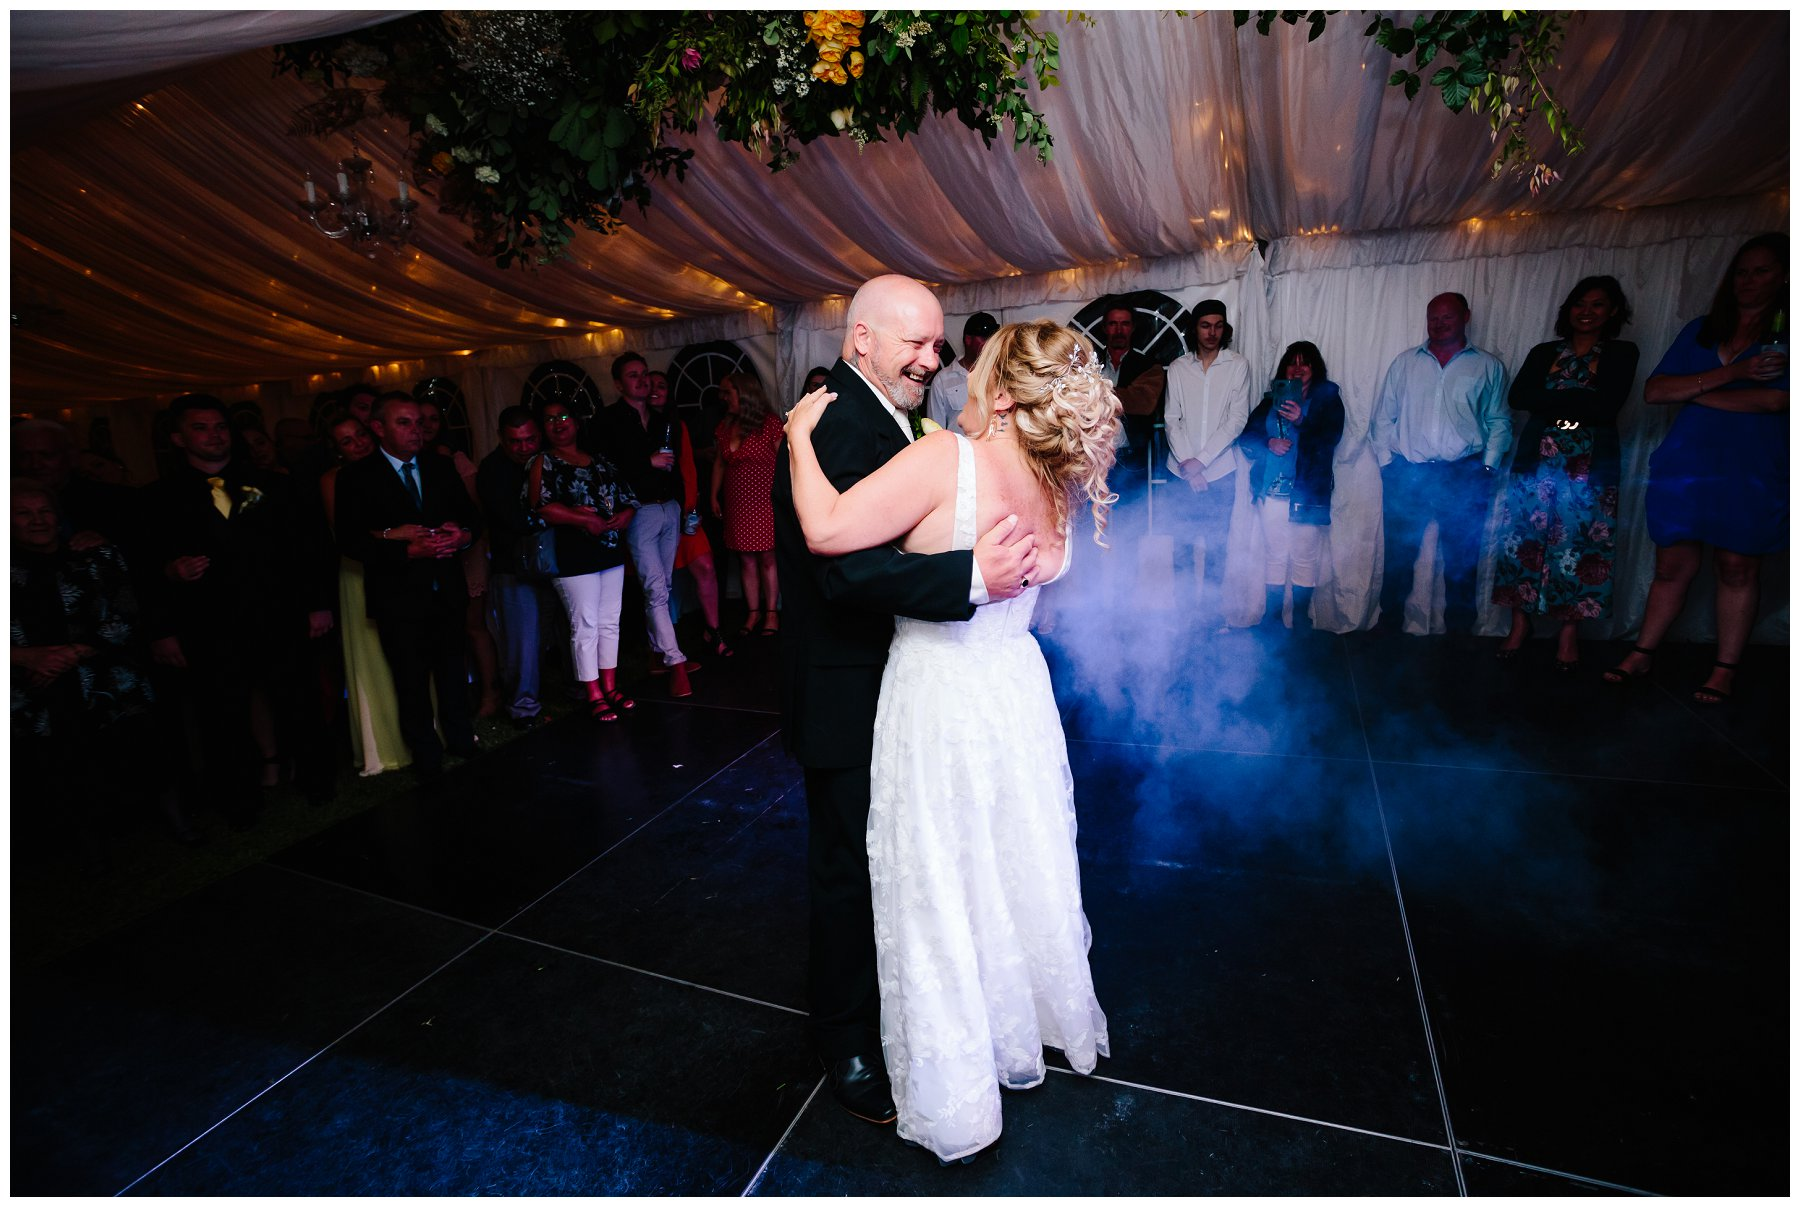 bridal waltz smoke machine